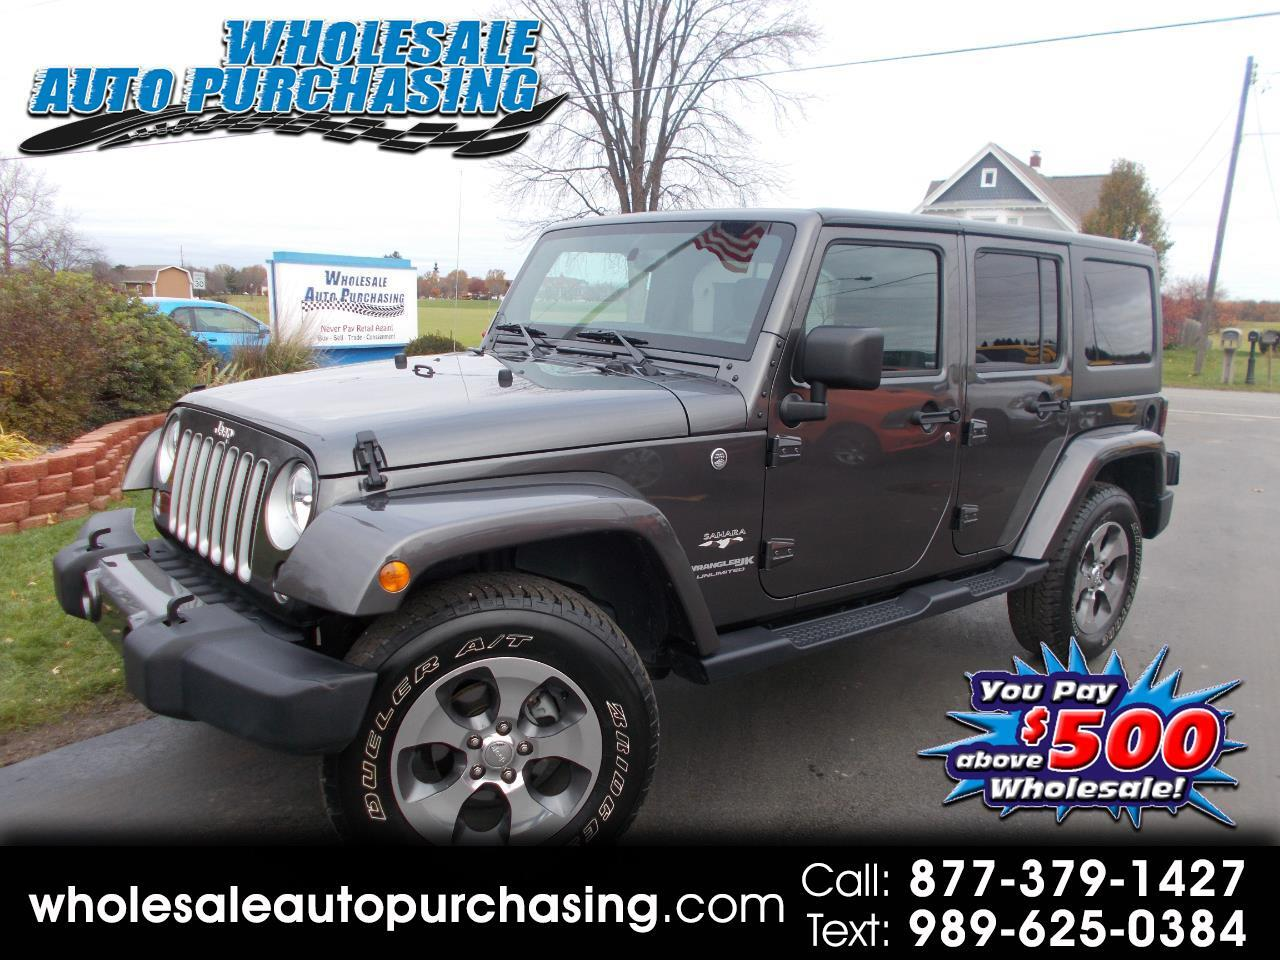 2018 Jeep Wrangler JK Unlimited Sahara 4WD